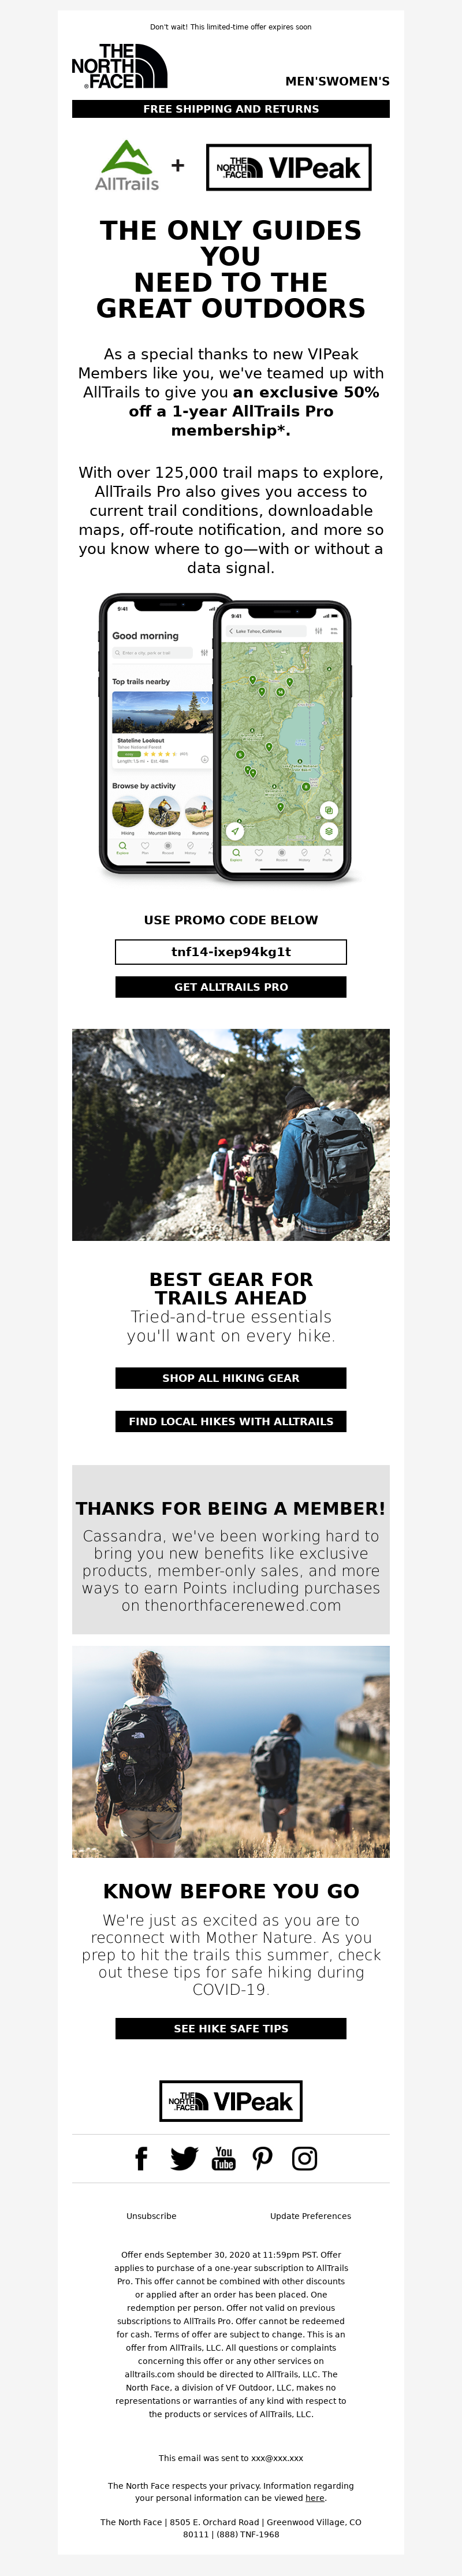 The North Face - Cassandra, get 50% off 1 year of AllTrails Pro